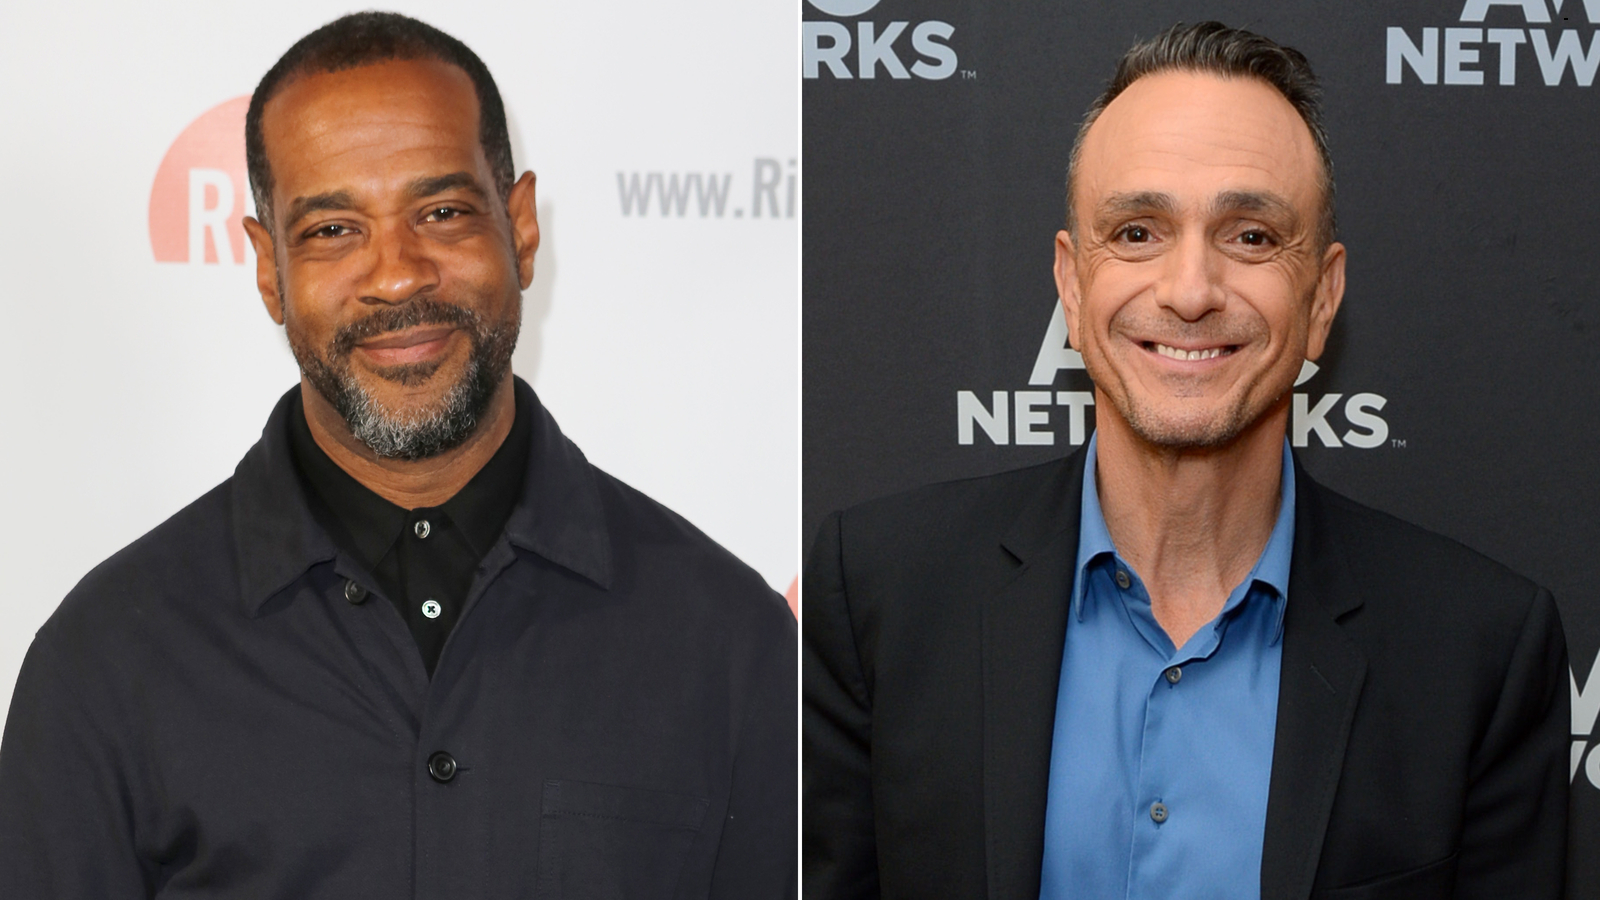 Alex Désert takes over for Hank Azaria voicing Carl on 'The Simpsons'